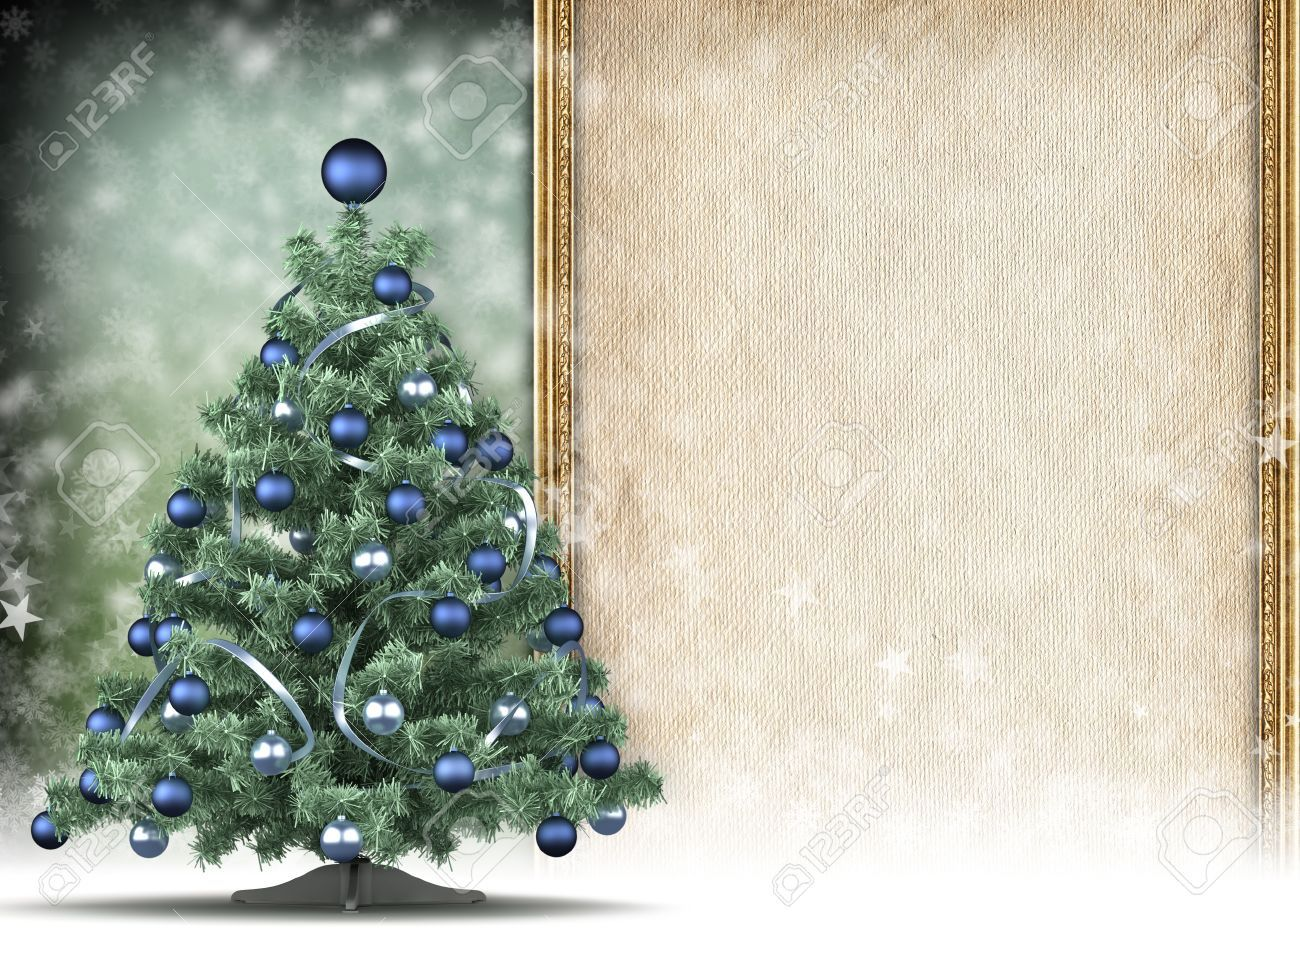 Christmas Card Template Xmas Tree And Blank Space For Text With Blank Christmas Card T Christmas Card Templates Free Card Templates Free Christmas Cards Free